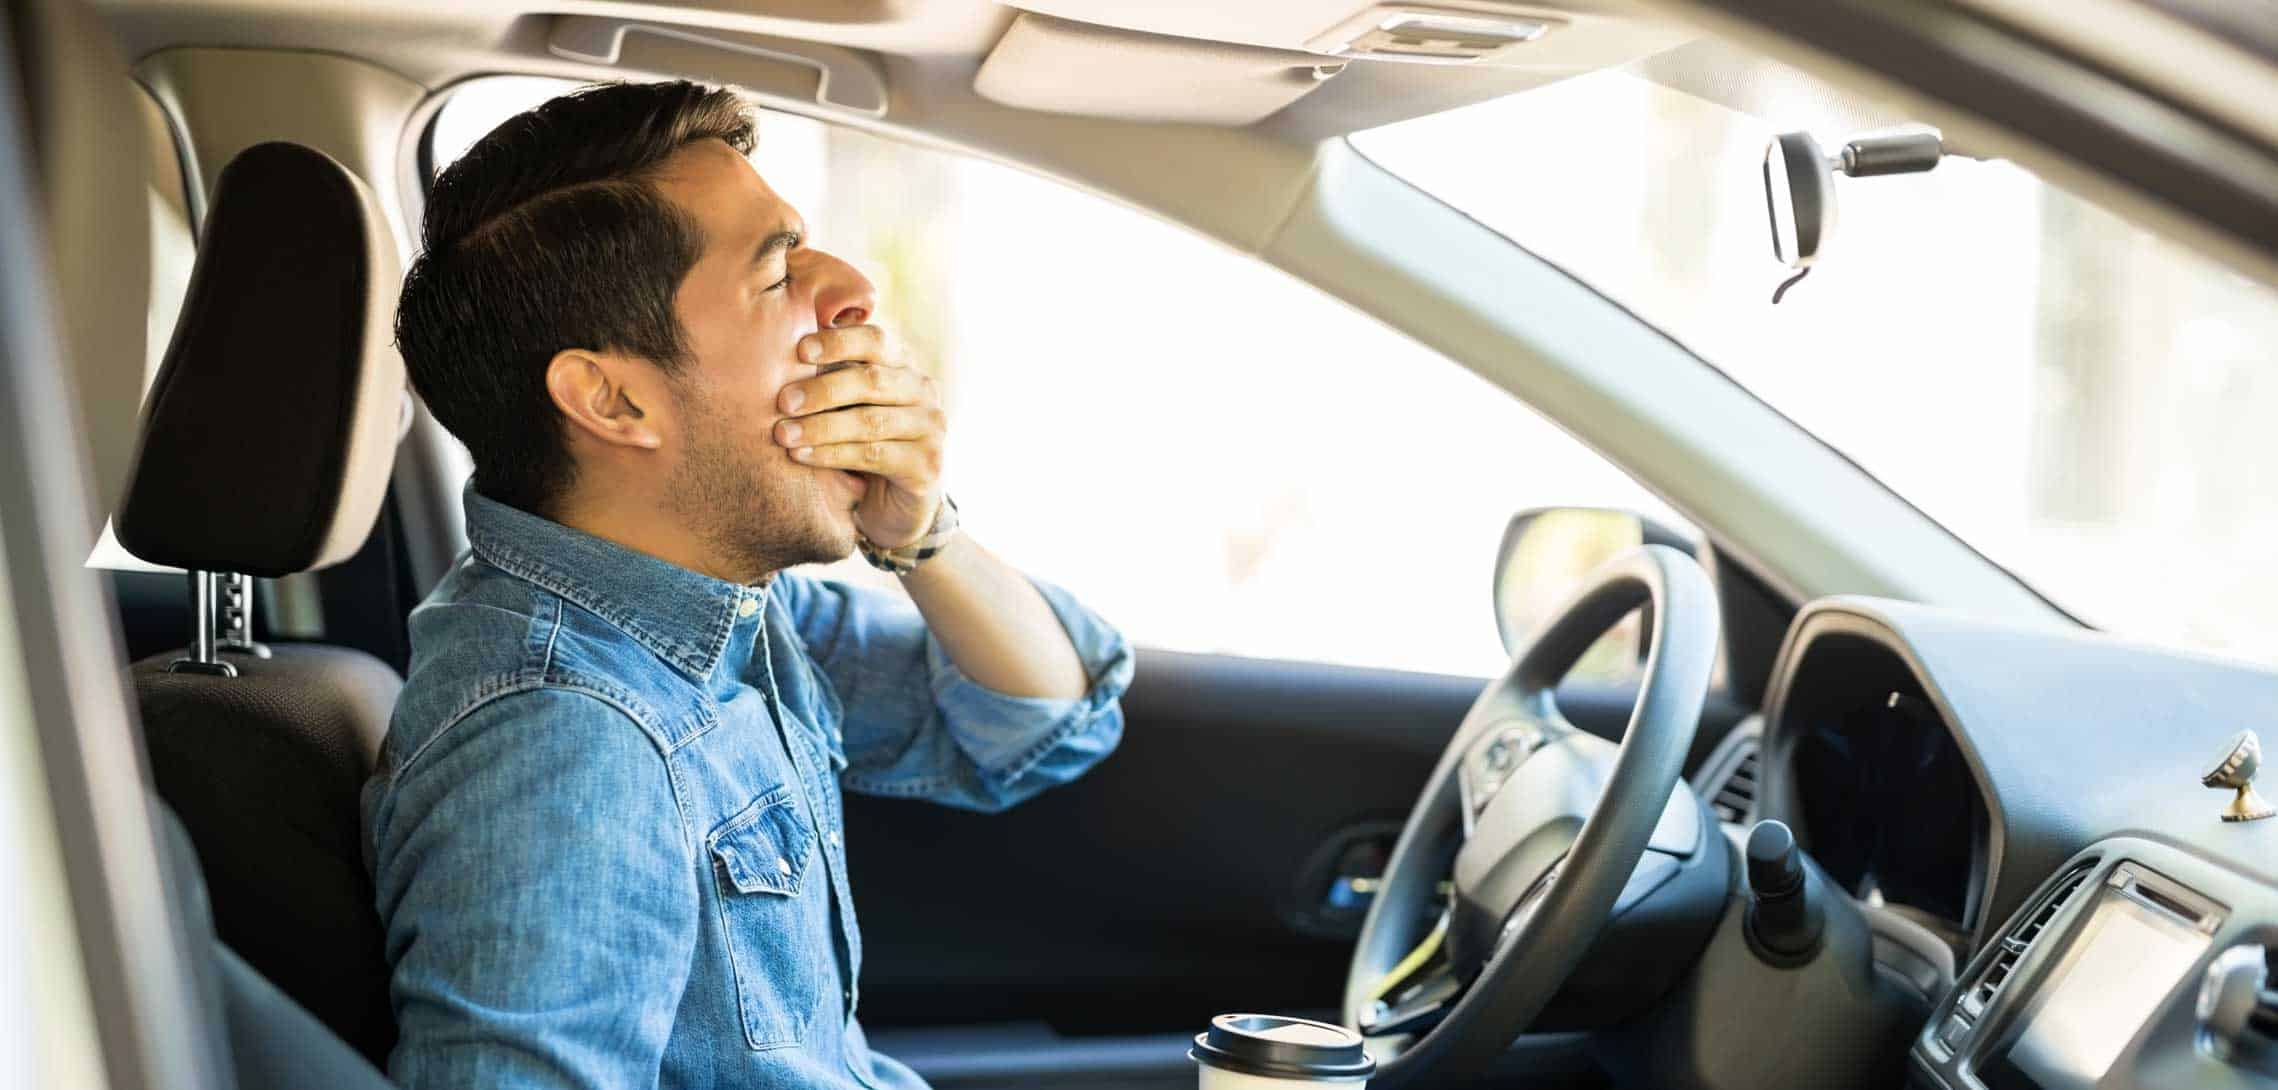 Sleepy behind the wheel? Tips to combat drowsy driving